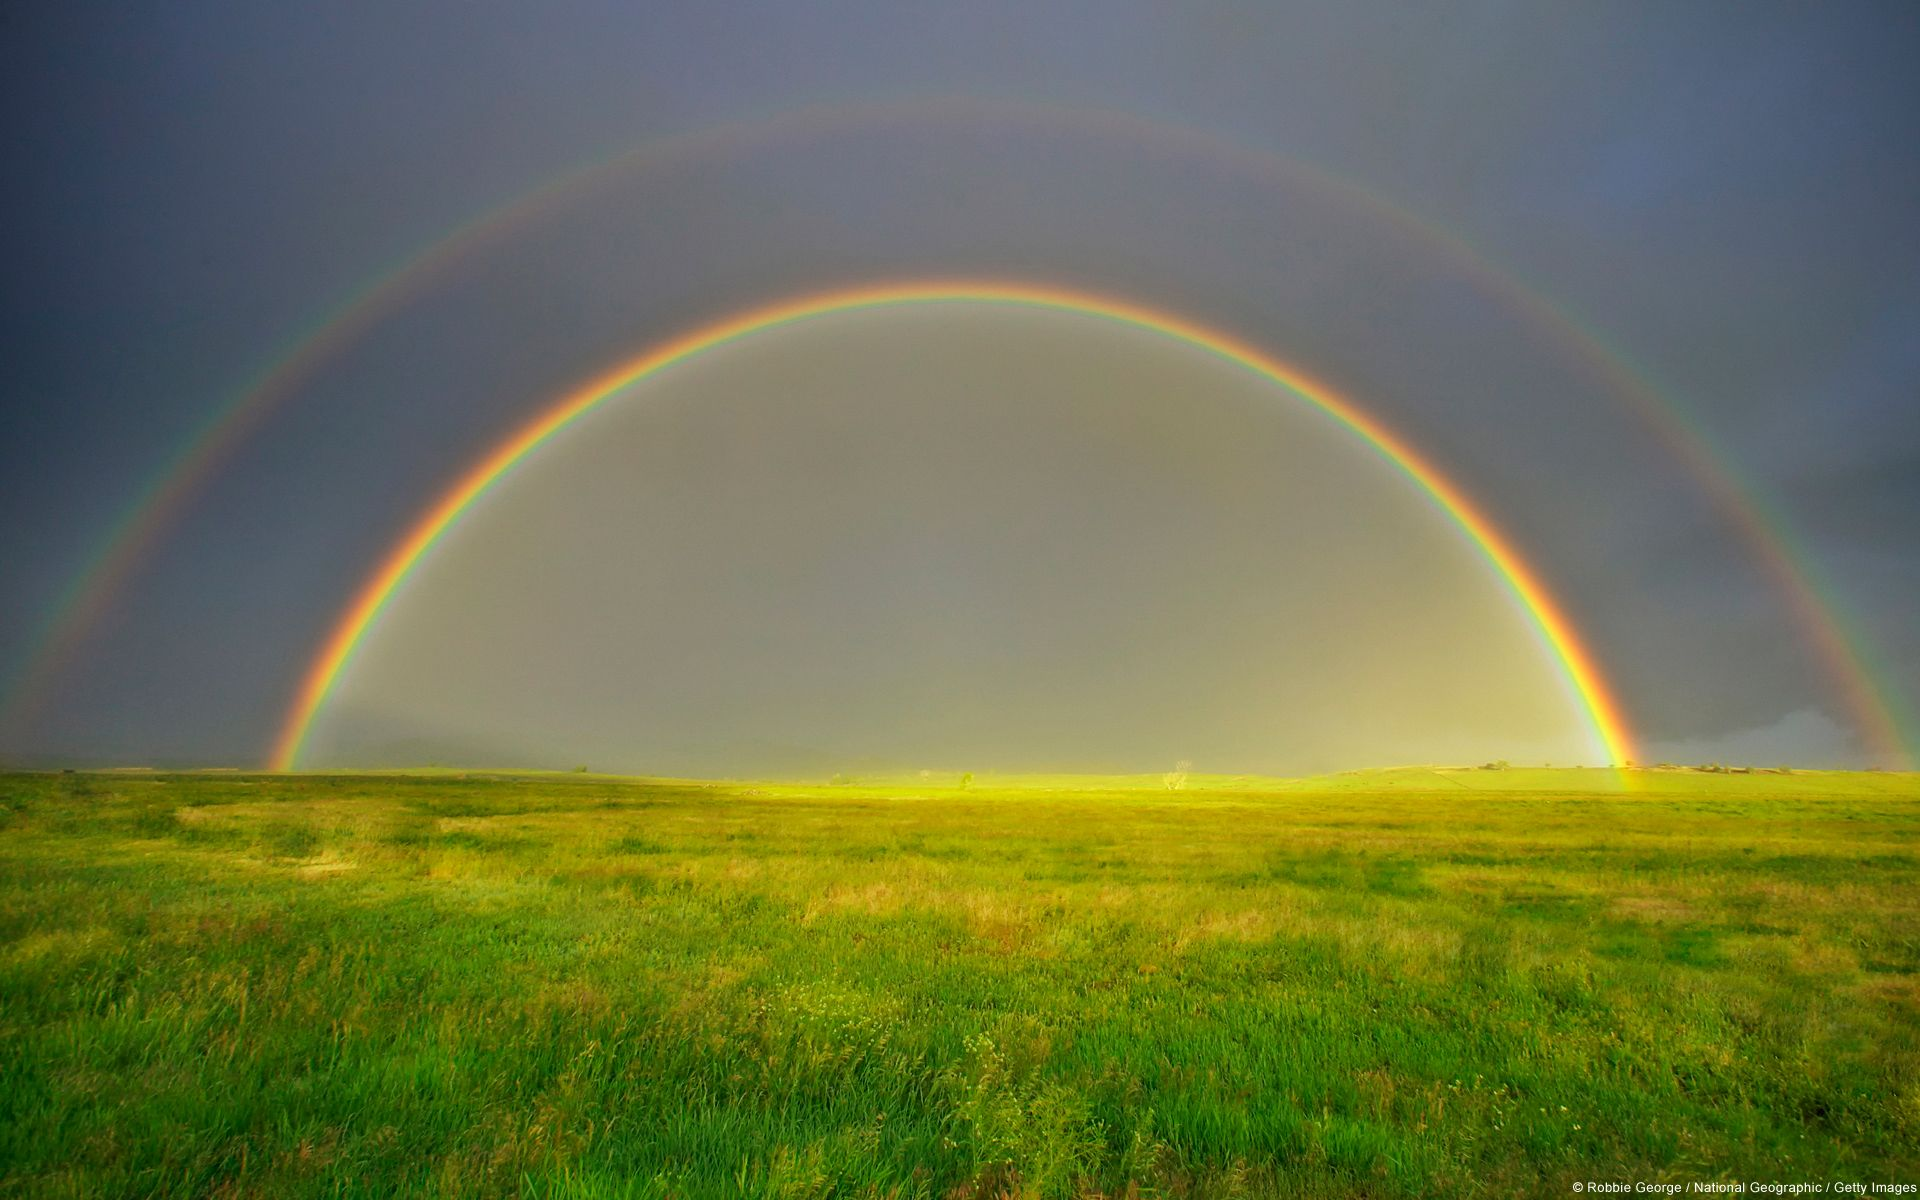 Hd Beautiful Double Rainbow Wallpaper Download Free 55850 Rainbow Photography Beautiful Rainbow Rainbow Wallpaper